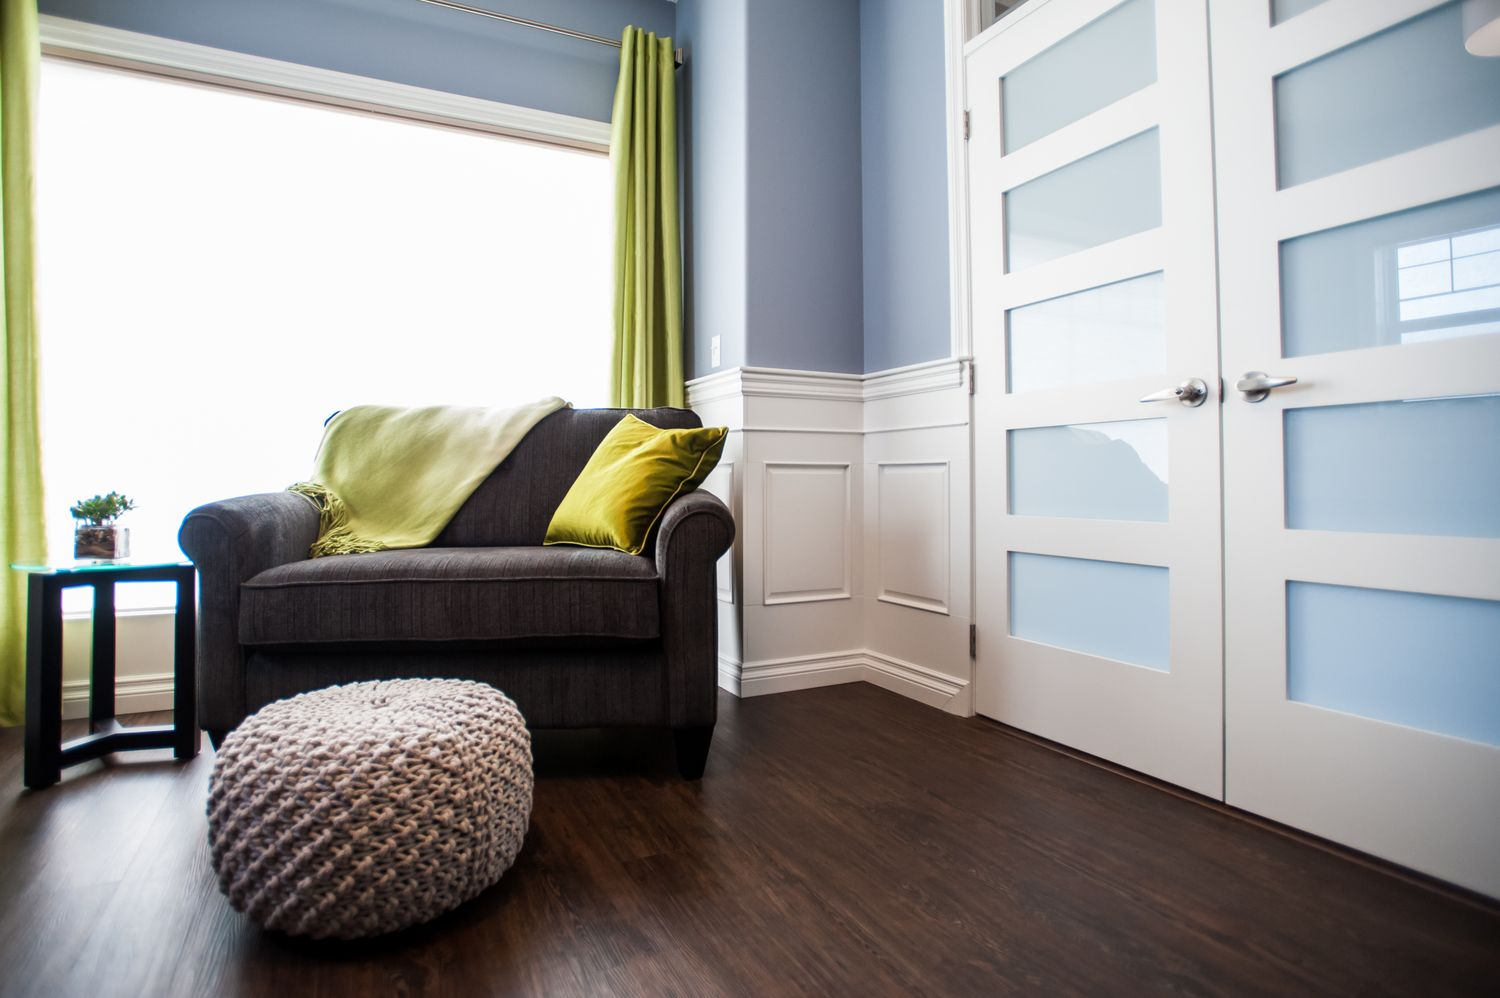 comfortable seating pouf chair and a half green blue white cork flooring french doors. Black Bedroom Furniture Sets. Home Design Ideas